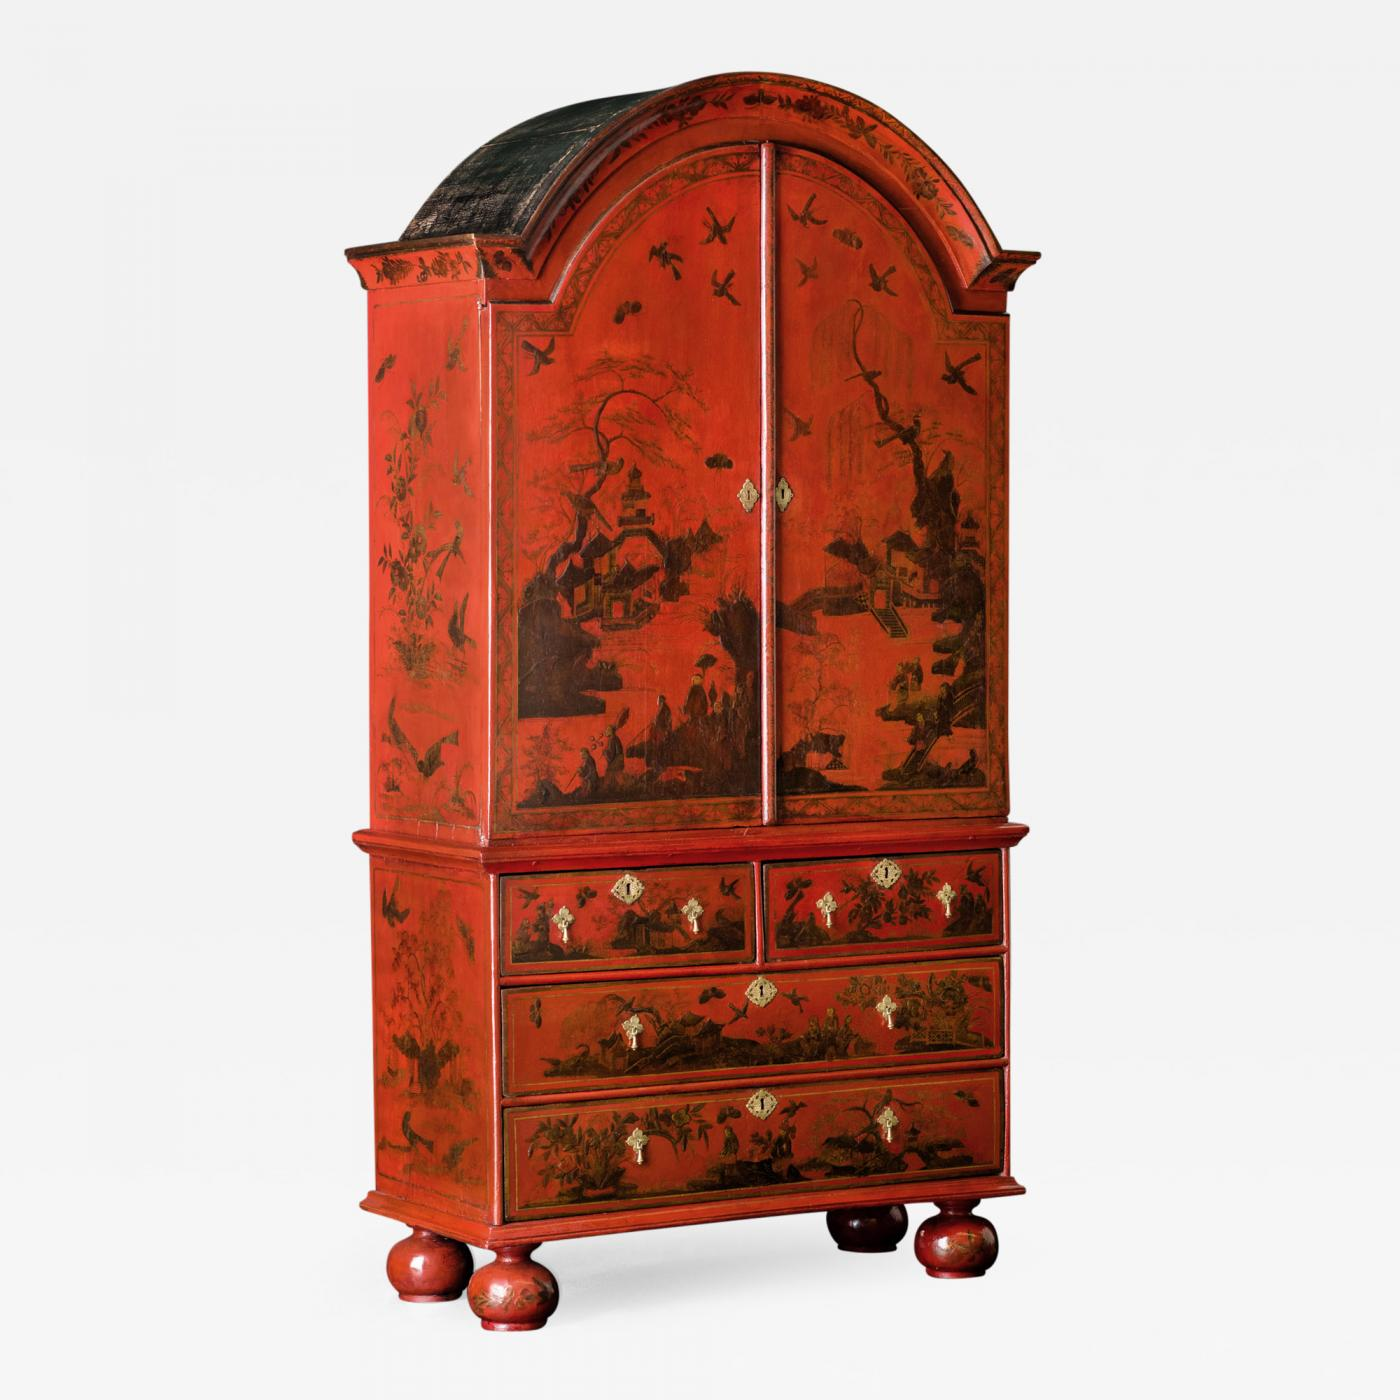 A Queen Anne Red Japanned Cabinet on Chest